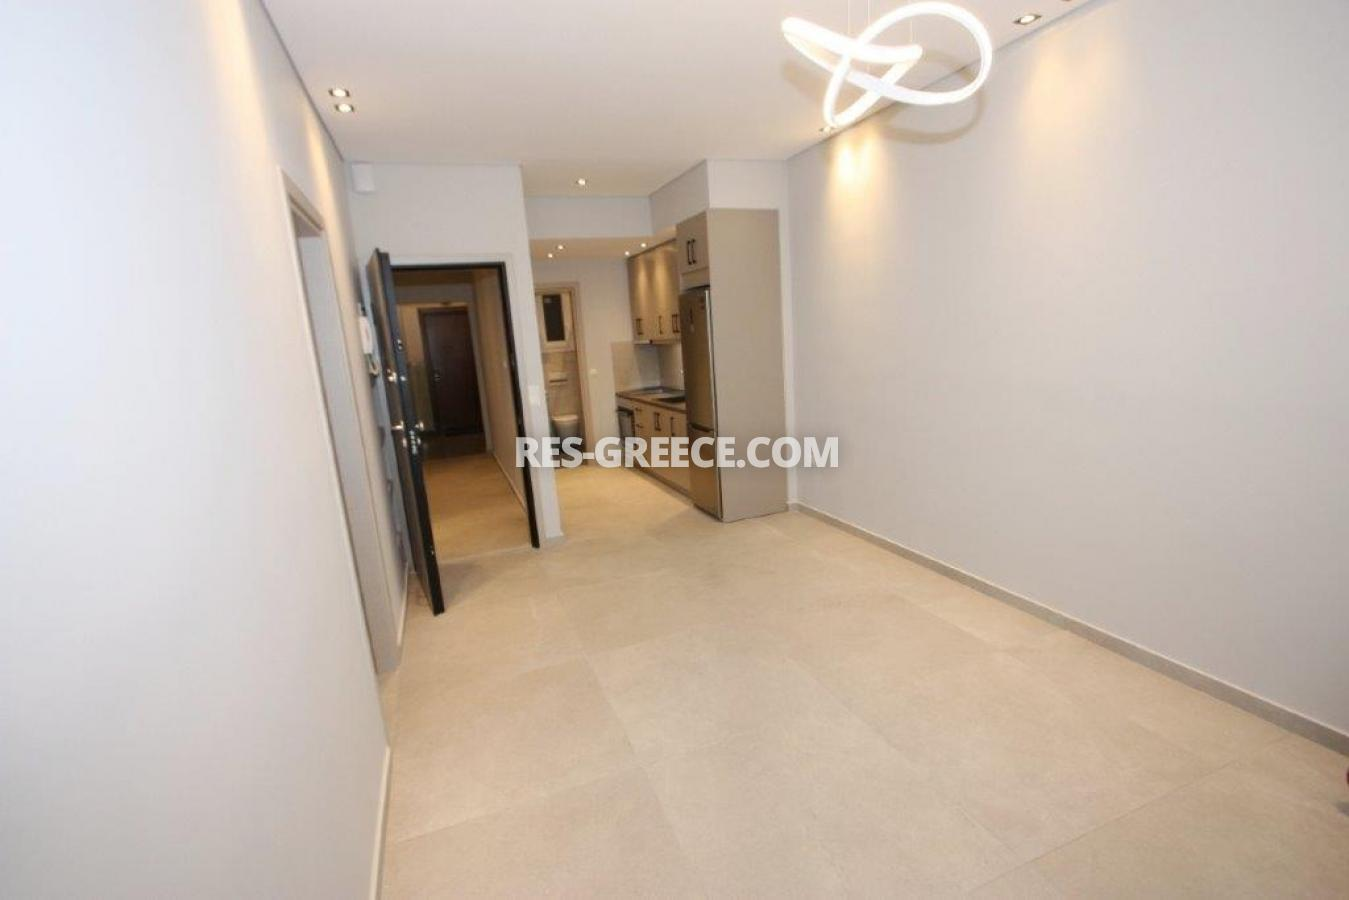 Poli 11, Central Macedonia, Greece - investment appartment in Thessaloniki - Photo 3